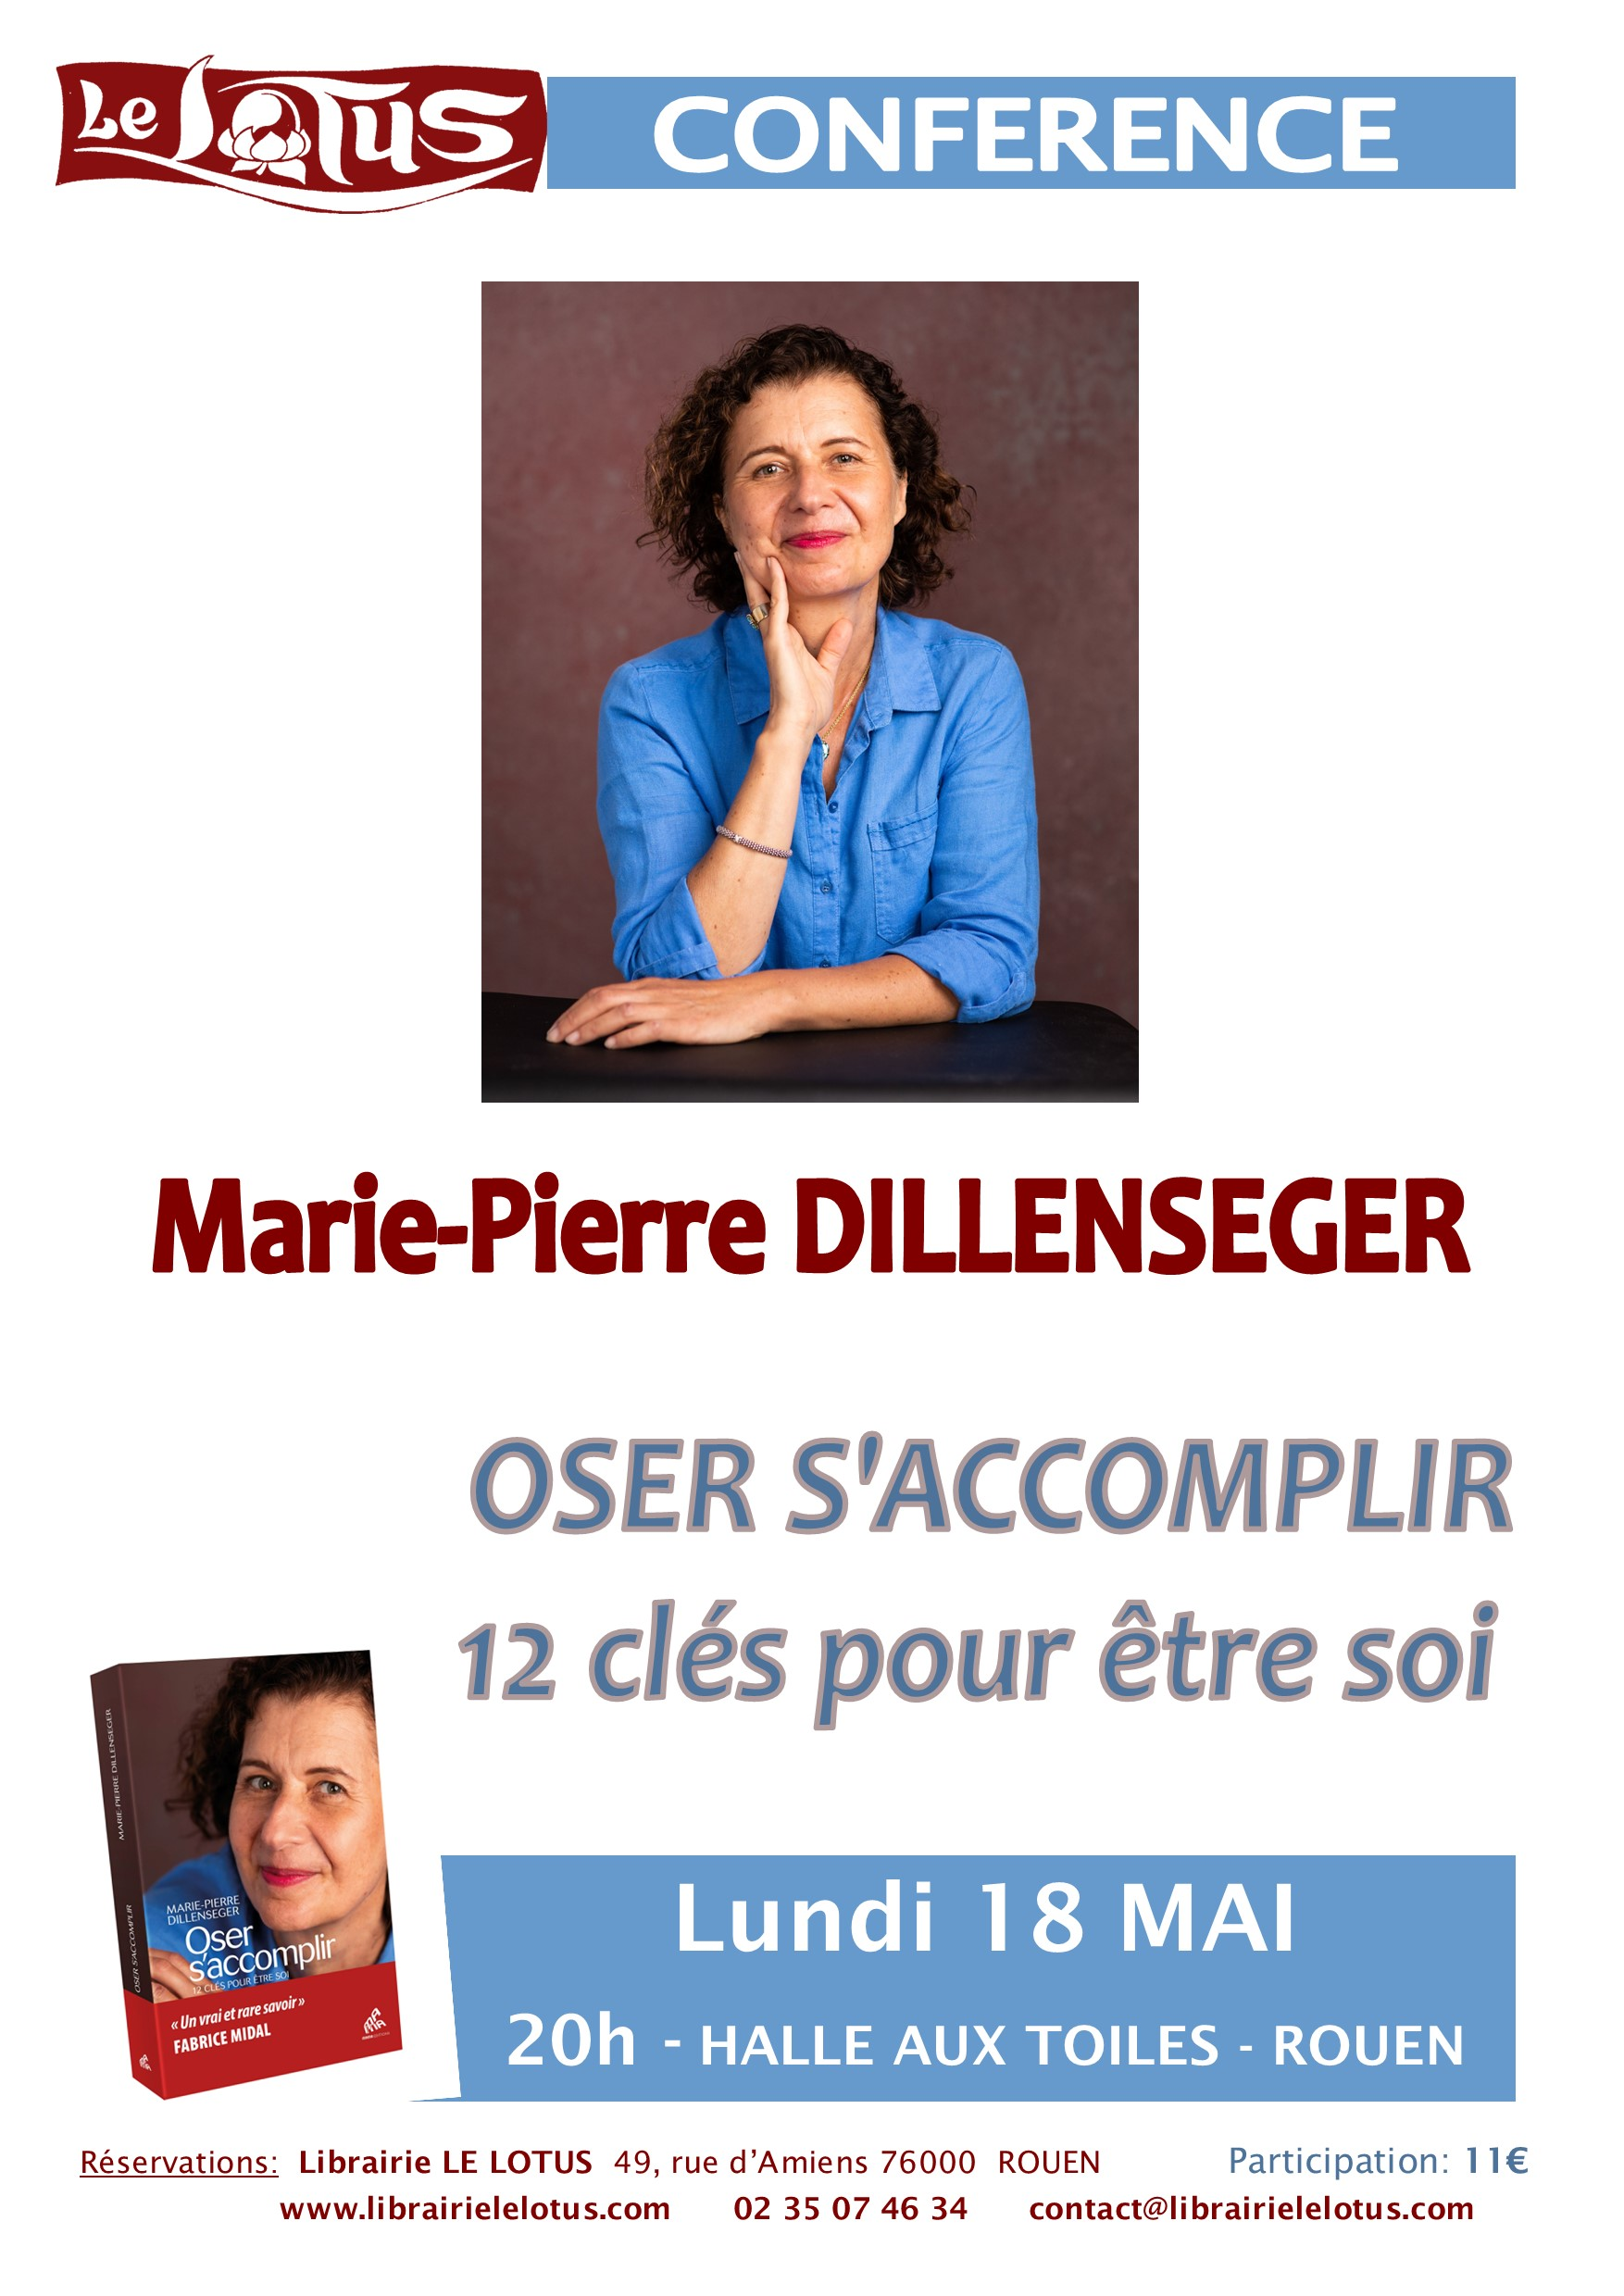 CONFERENCE - M-P DILLENSEGER - OSER S'ACCOMPLIR